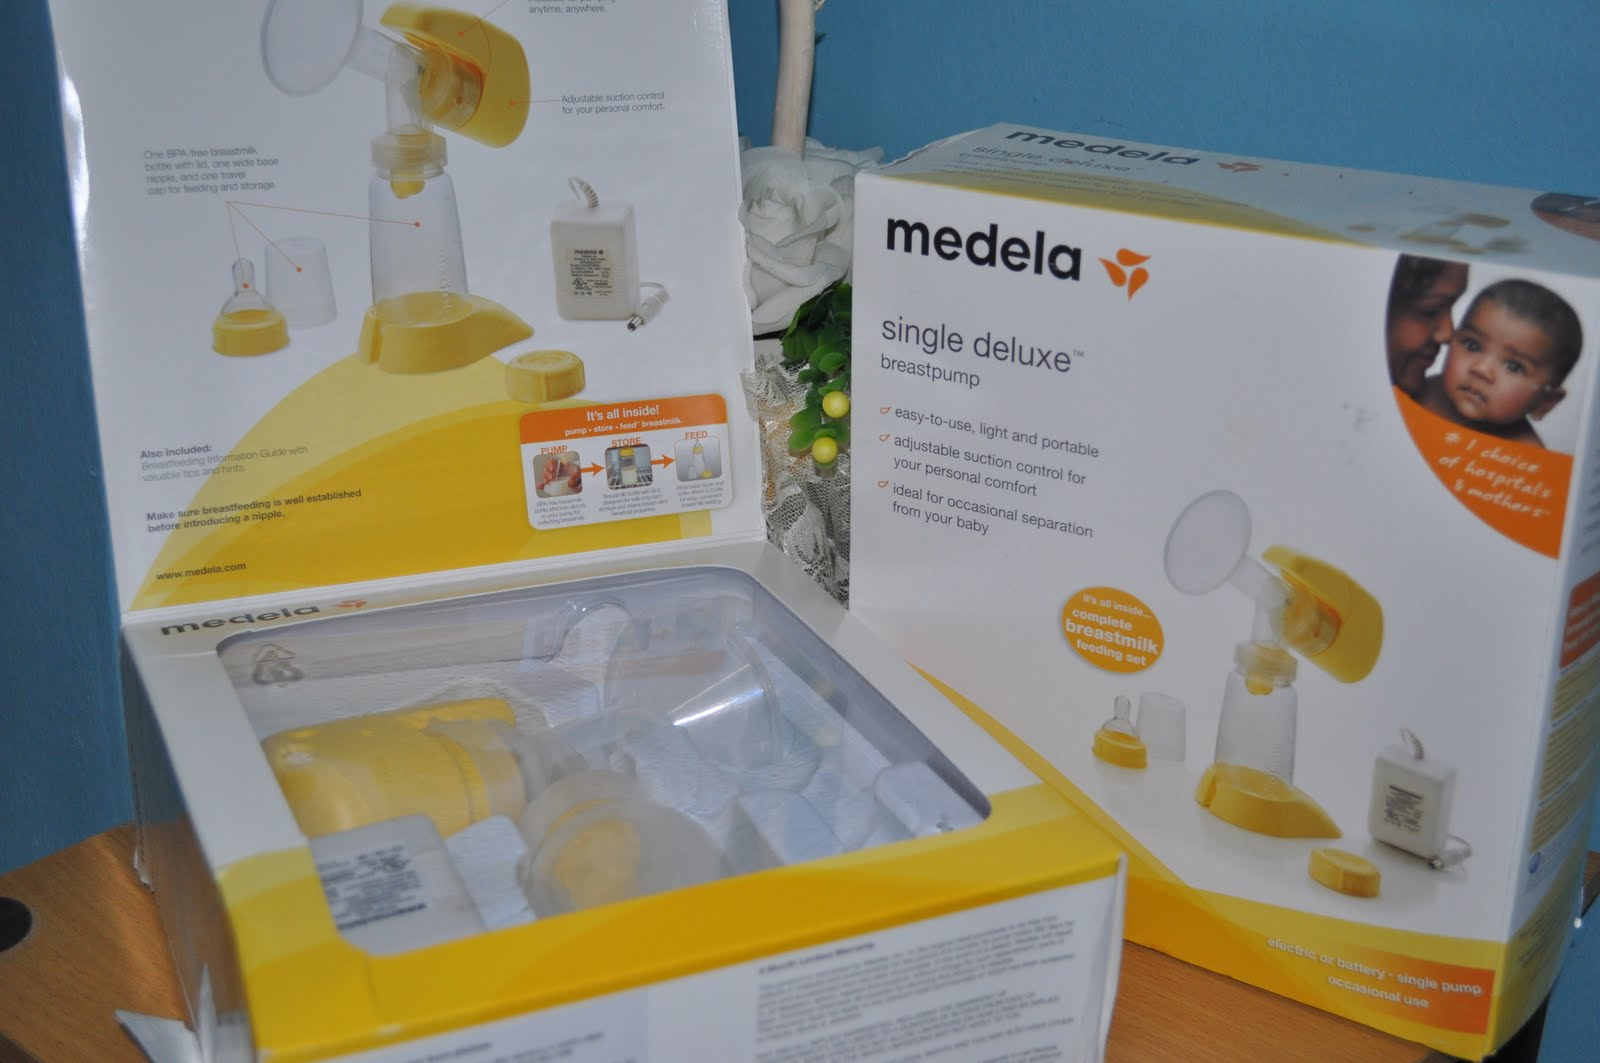 Medela Single Deluxe Battery Electric Breast Pump 96